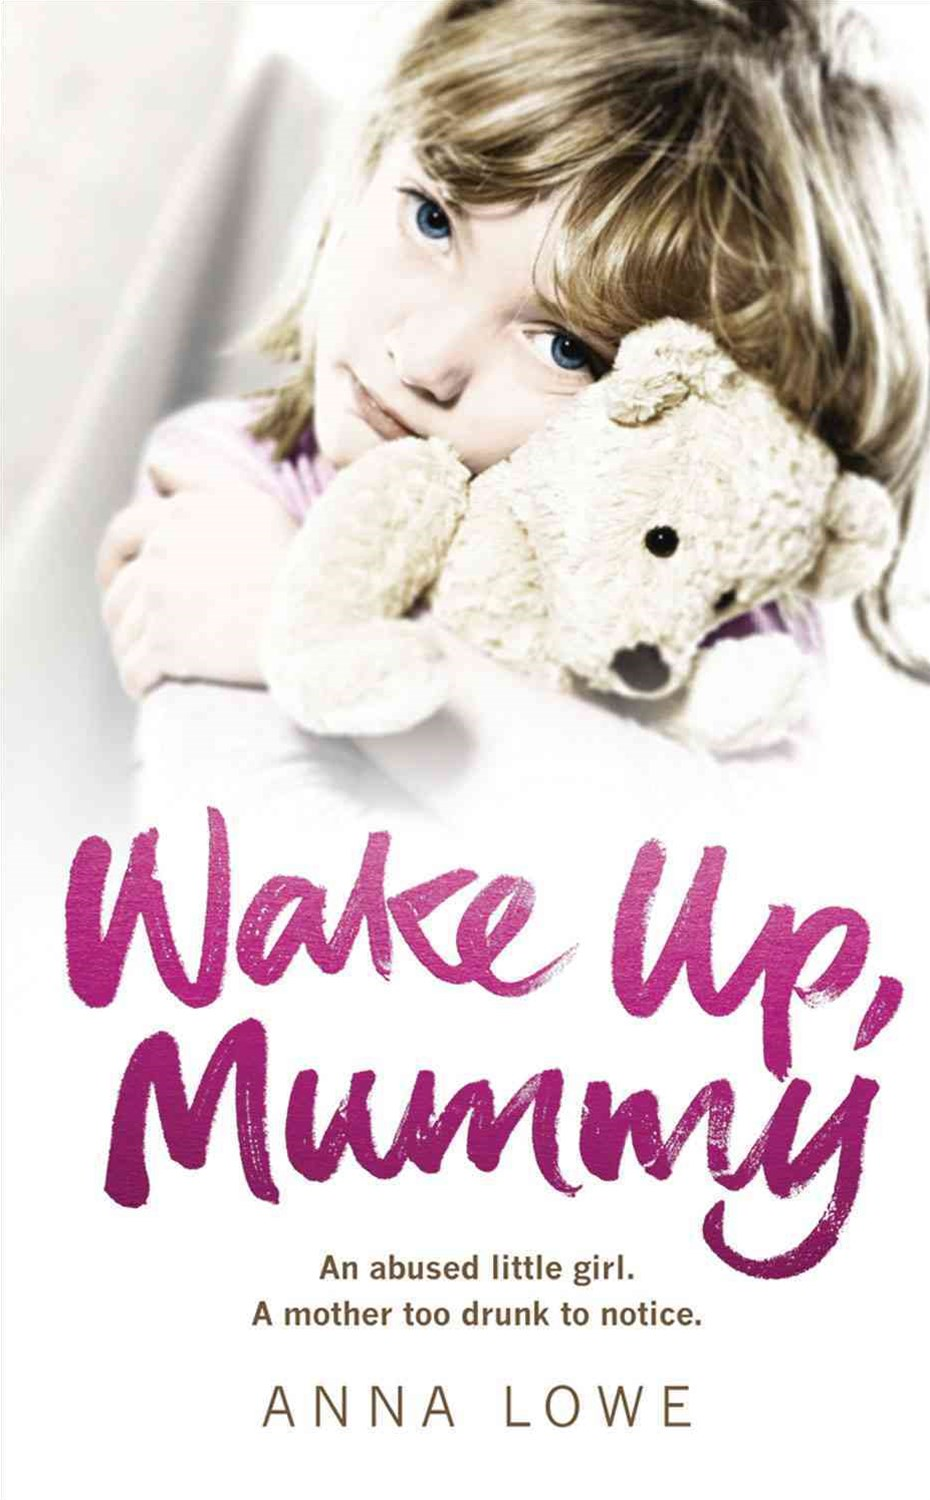 Wake Up, MummyThe heartbreaking true story of an abused little girl whose